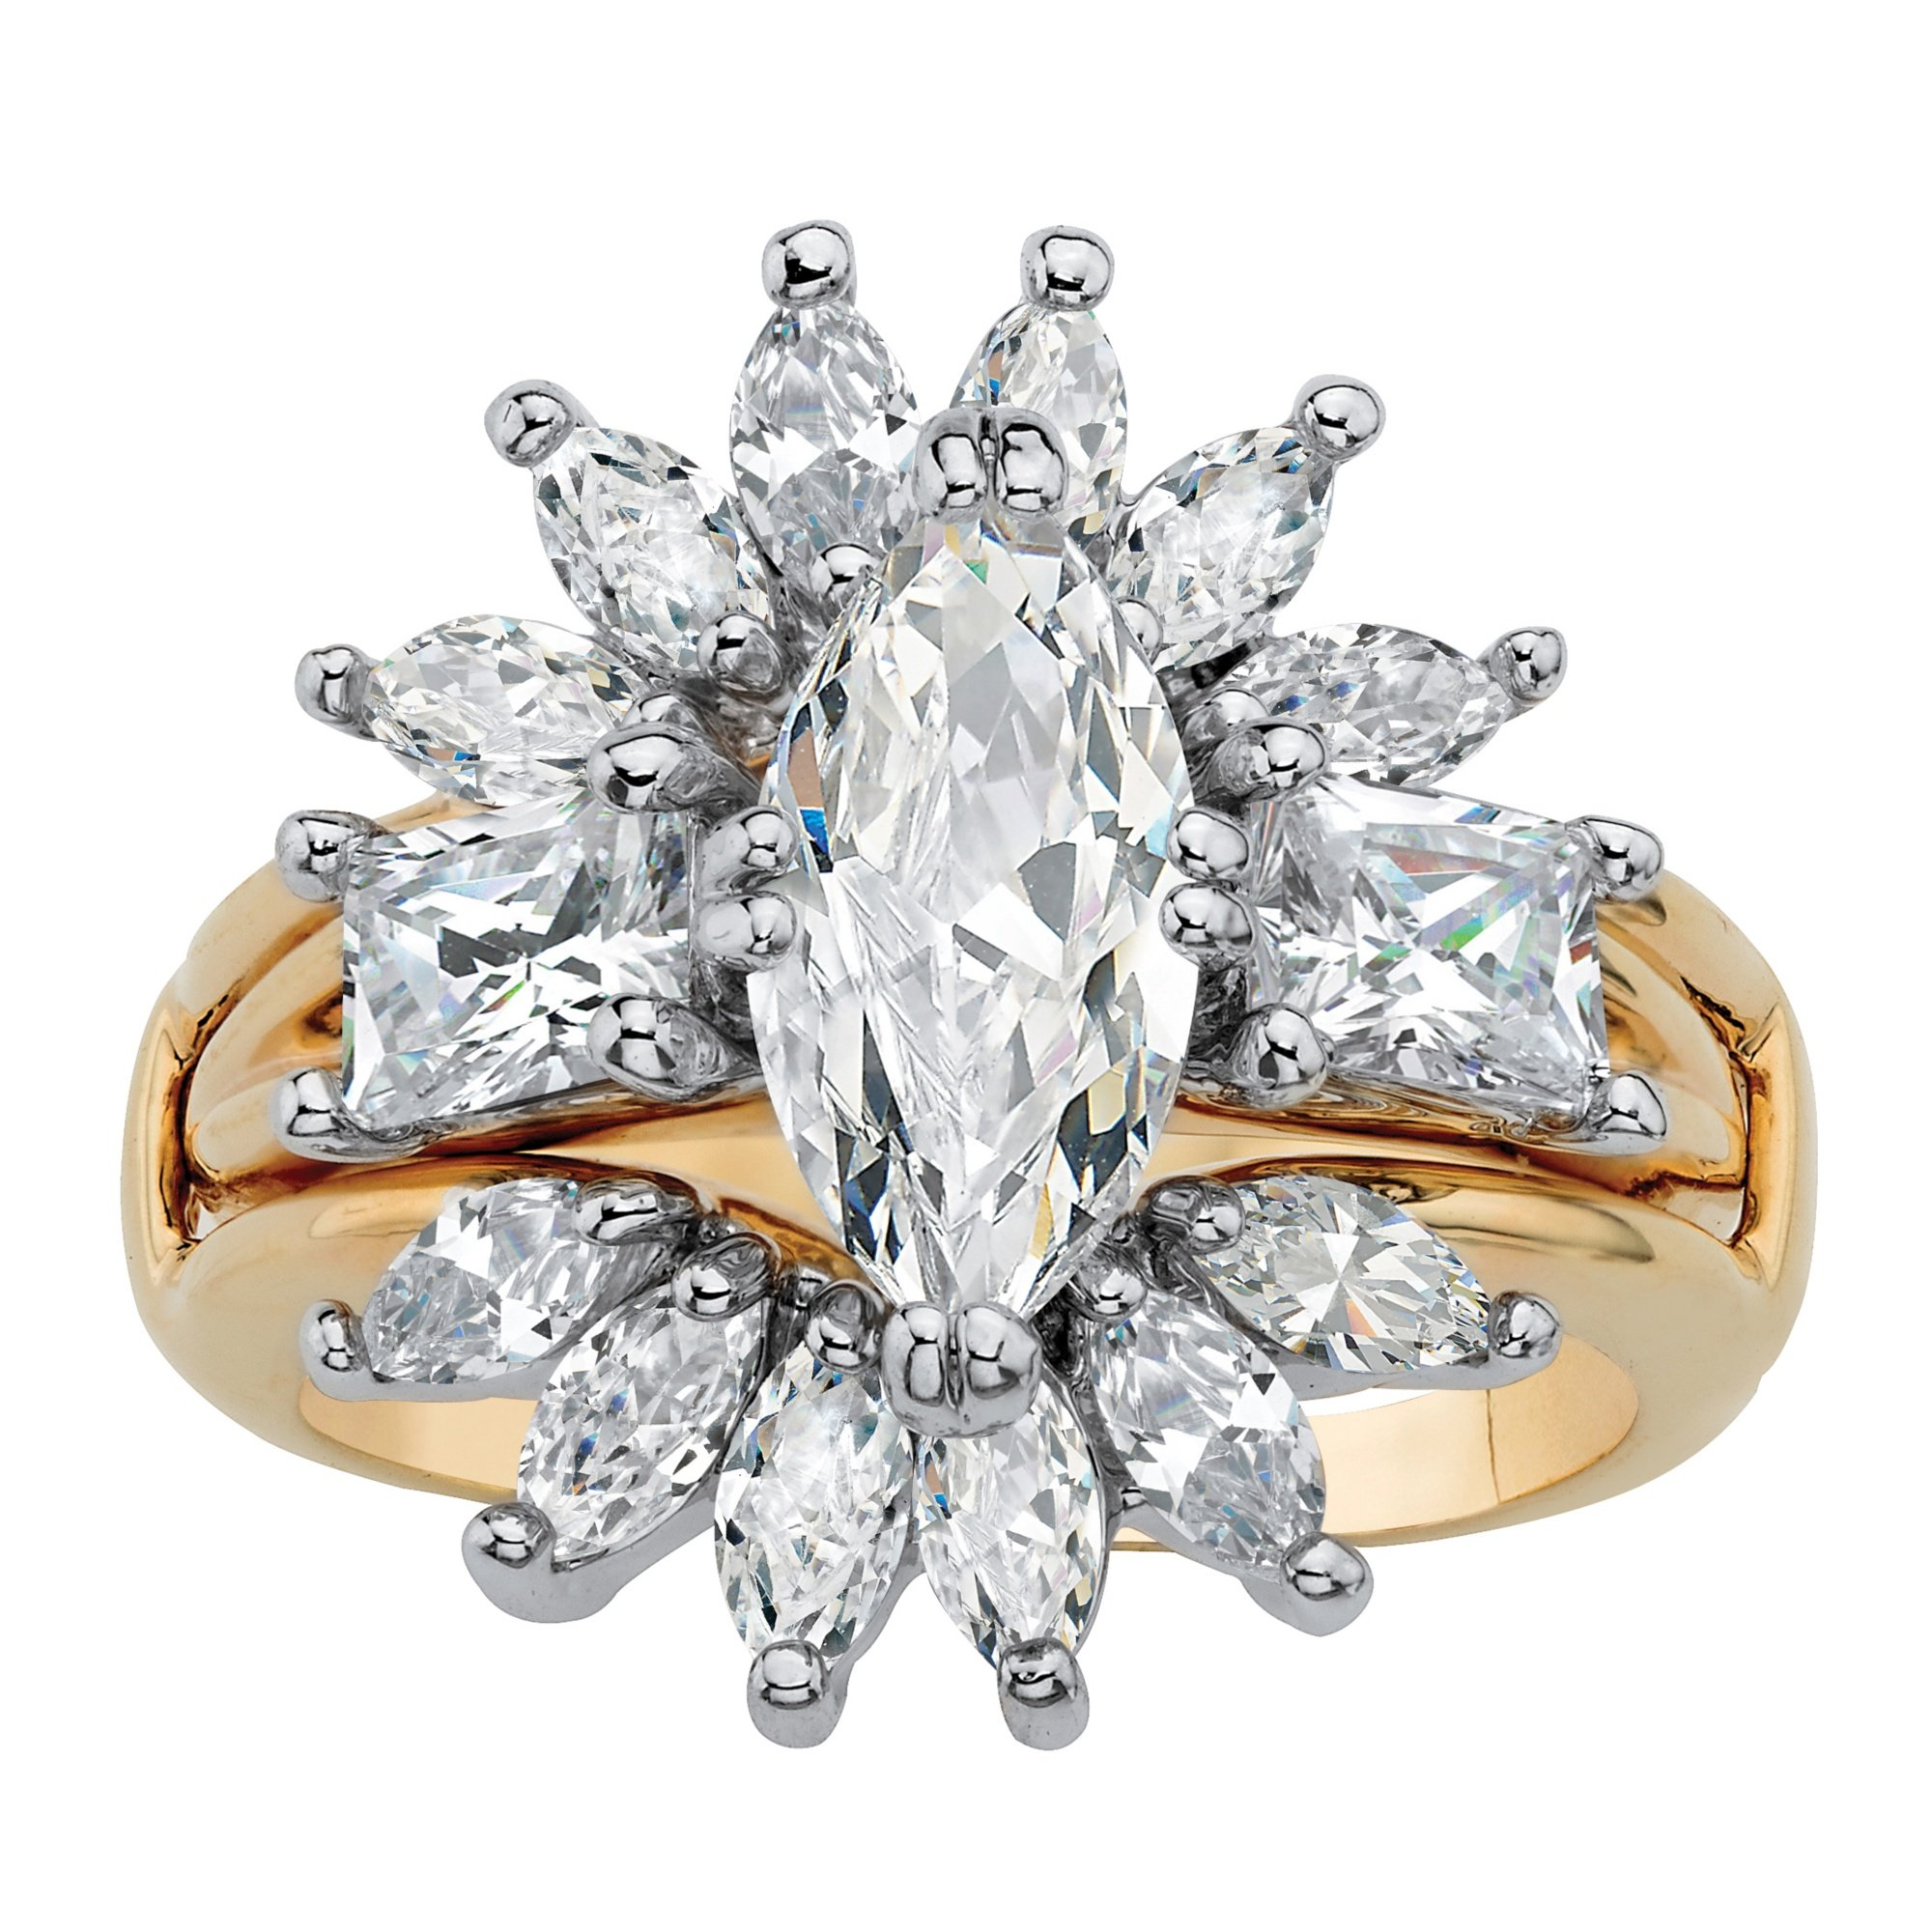 Palm Beach Jewelry 14K Yellow Gold-Plated Marquise Cut Cubic Zirconia Starburst Bridal Jacket Ring Set Size 7